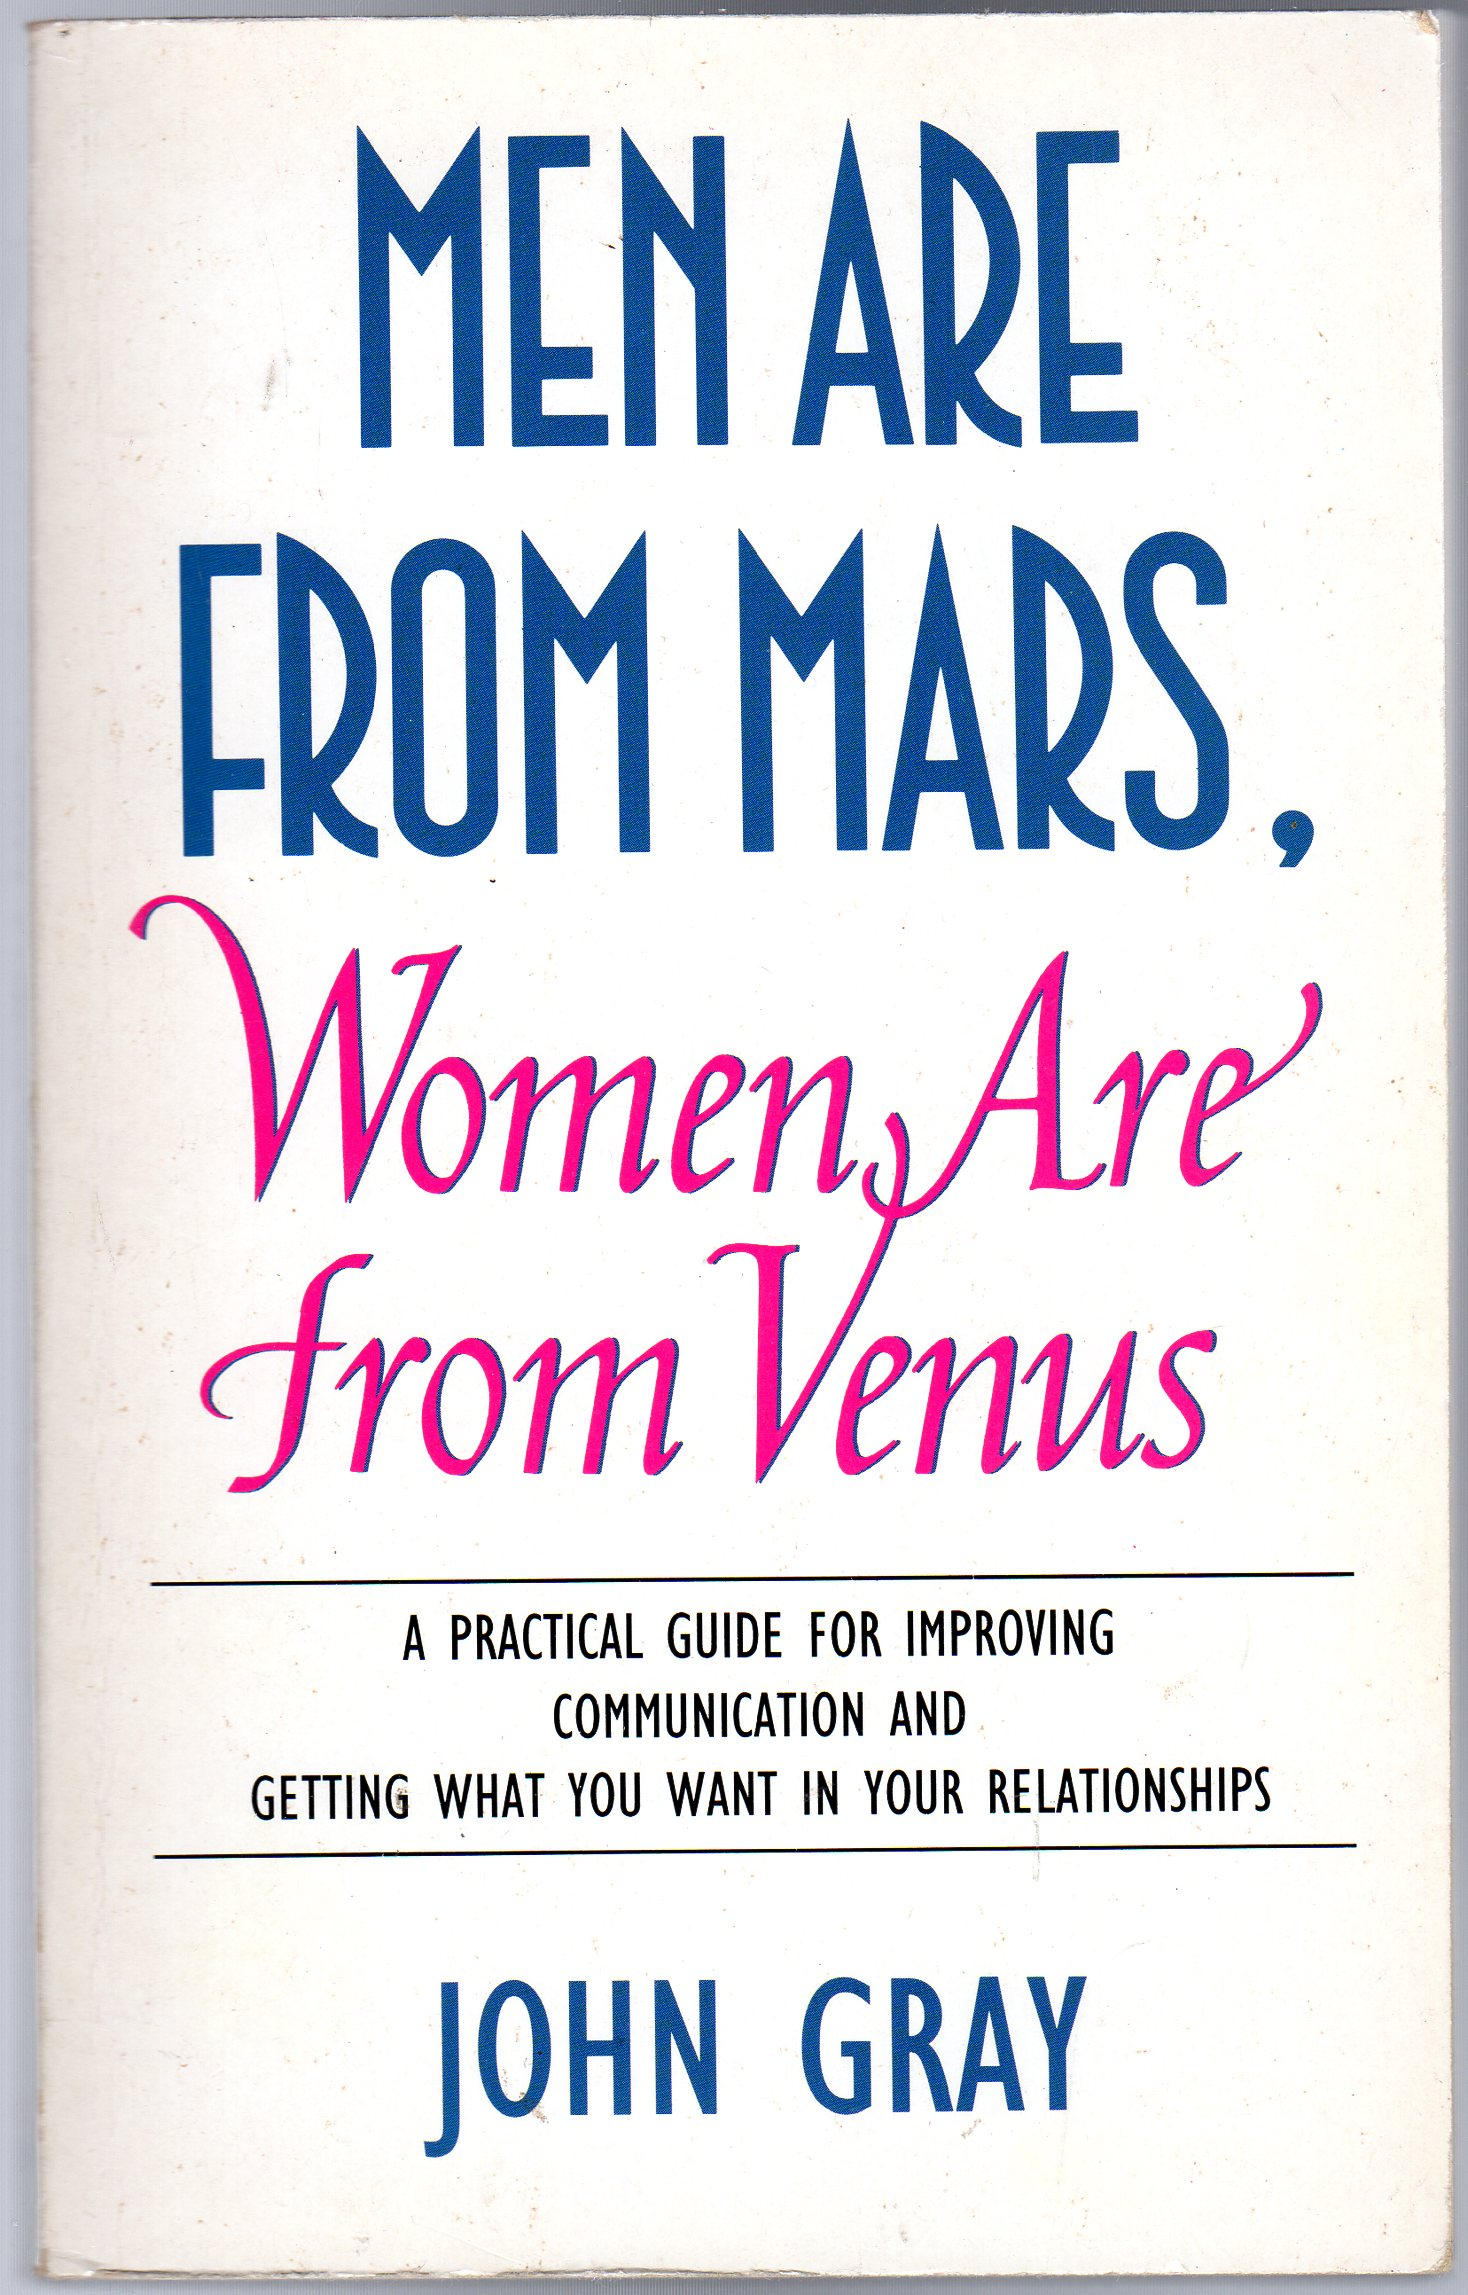 Image for Men are from Mars,Women are from Venus: A Practical Guide for Improving Communication and Getting What You Want in Your Relationships